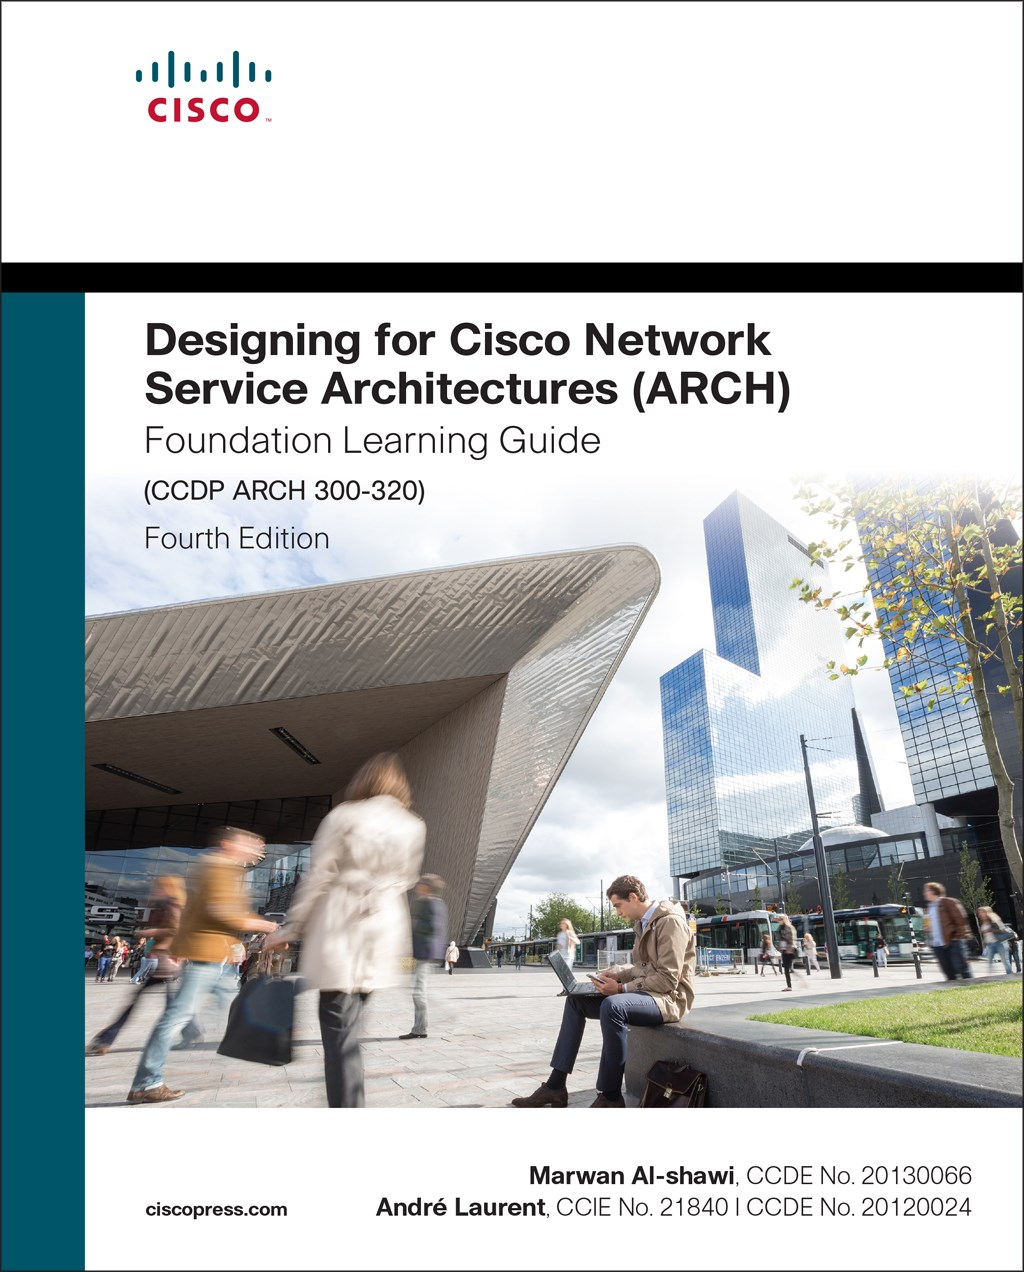 Designing for Cisco Network Service Architectures (ARCH) Foundation Learning Guide: CCDP ARCH 300-320, 3rd Edition